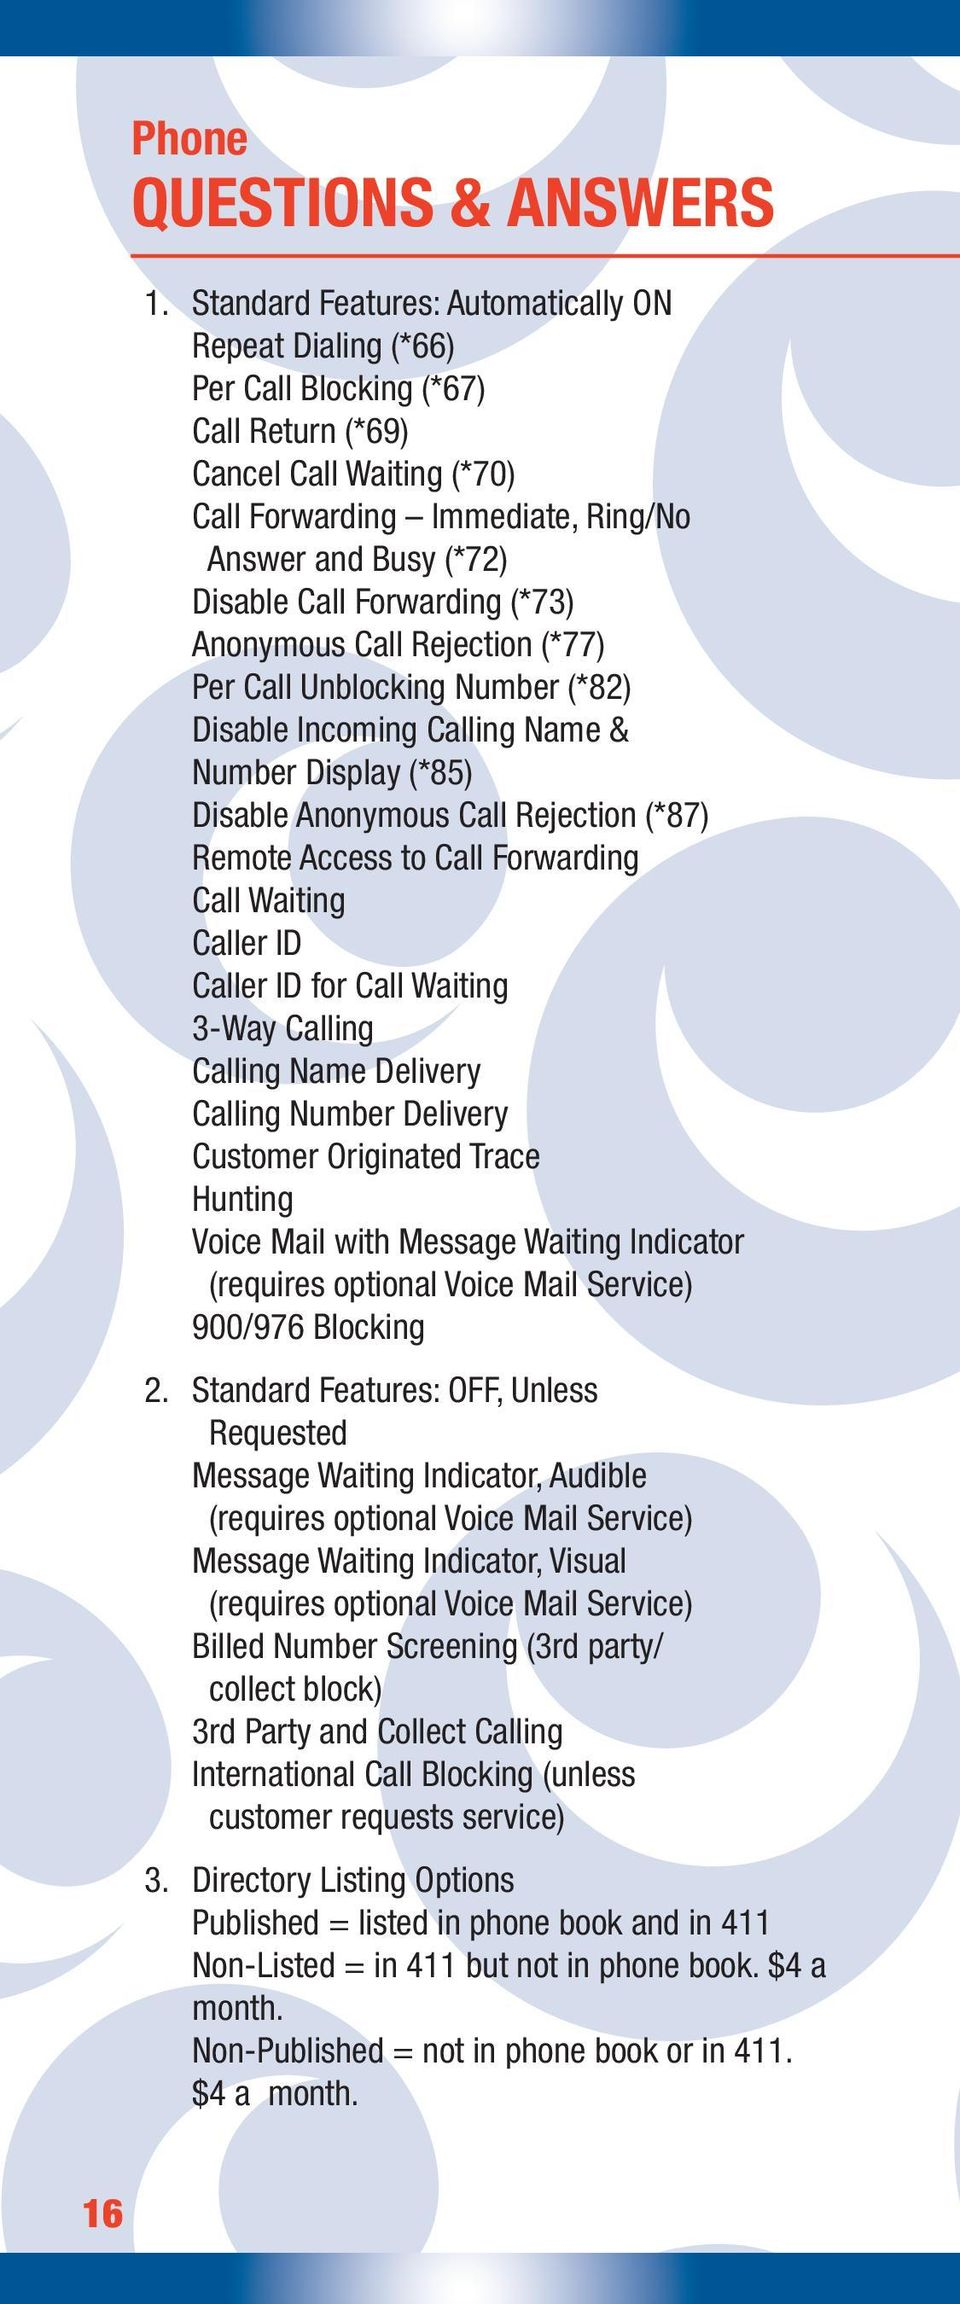 Forwarding (*73) Anonymous Call Rejection (*77) Per Call Unblocking Number (*82) Disable Incoming Calling Name & Number Display (*85) Disable Anonymous Call Rejection (*87) Remote Access to Call